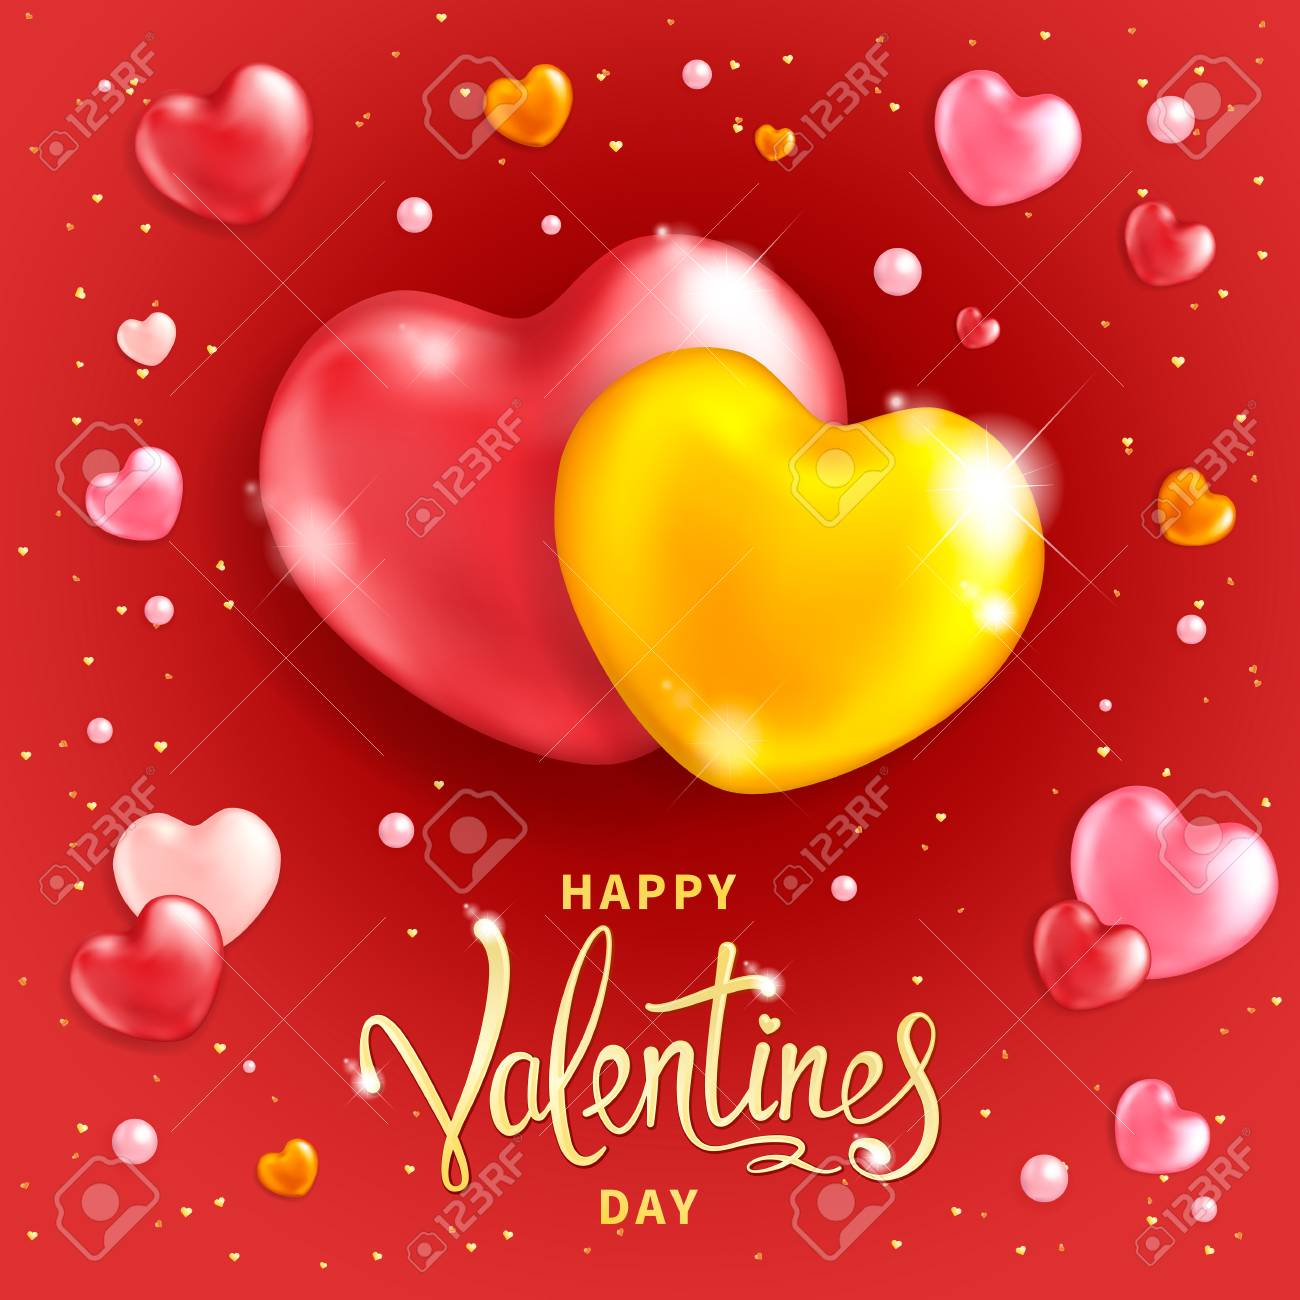 Happy Valentines Day Background Two Large Hearts Symbol Of